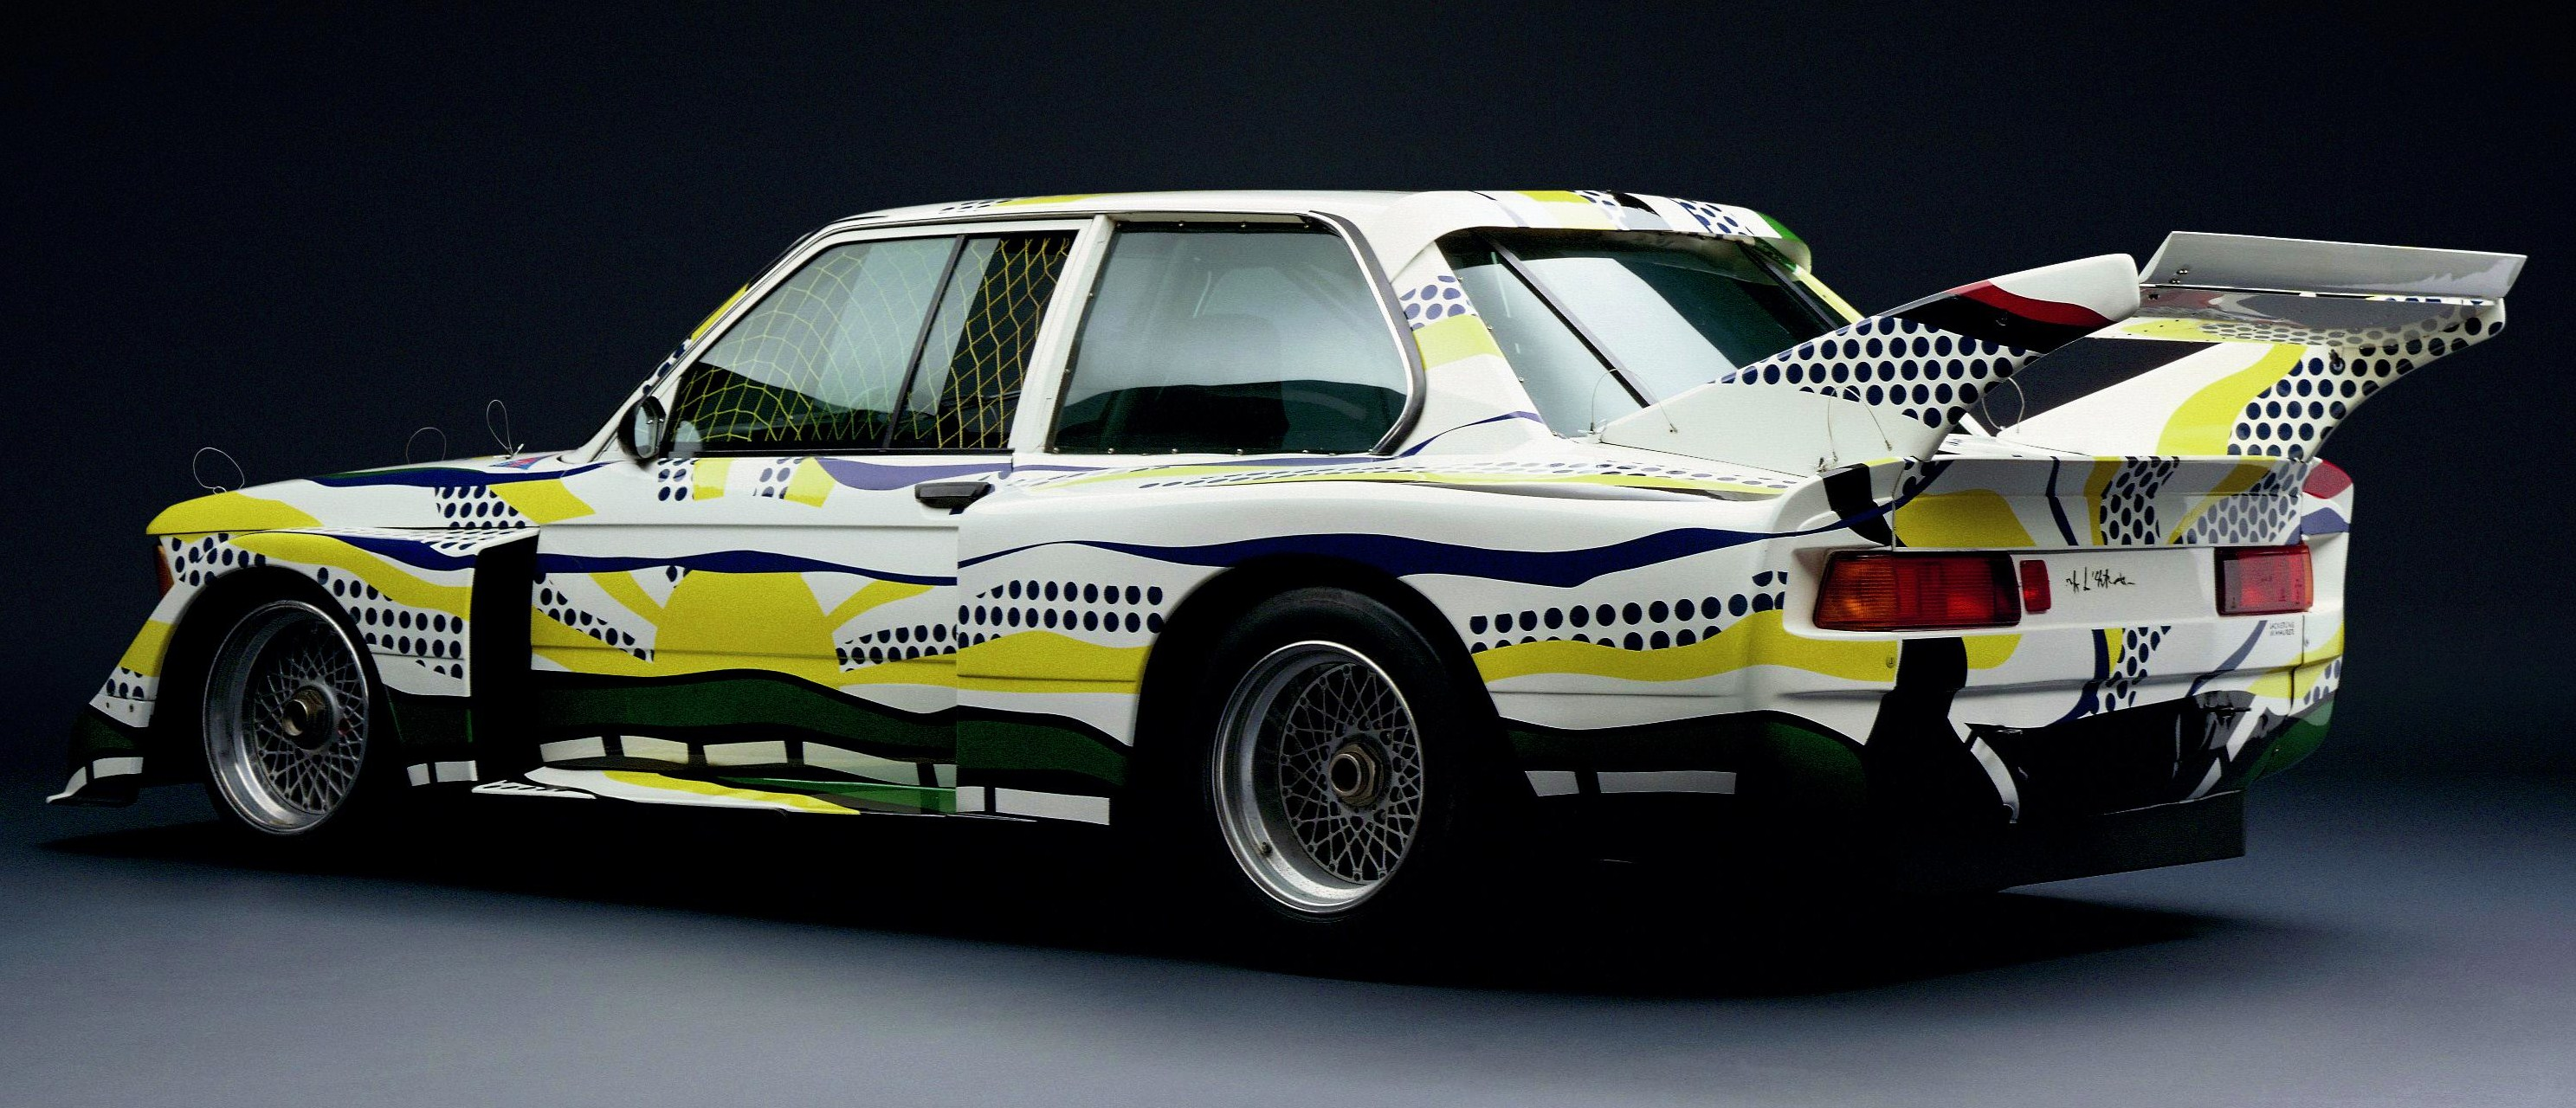 , BMW 'Art Cars' set for display at Miami Beach show, ClassicCars.com Journal